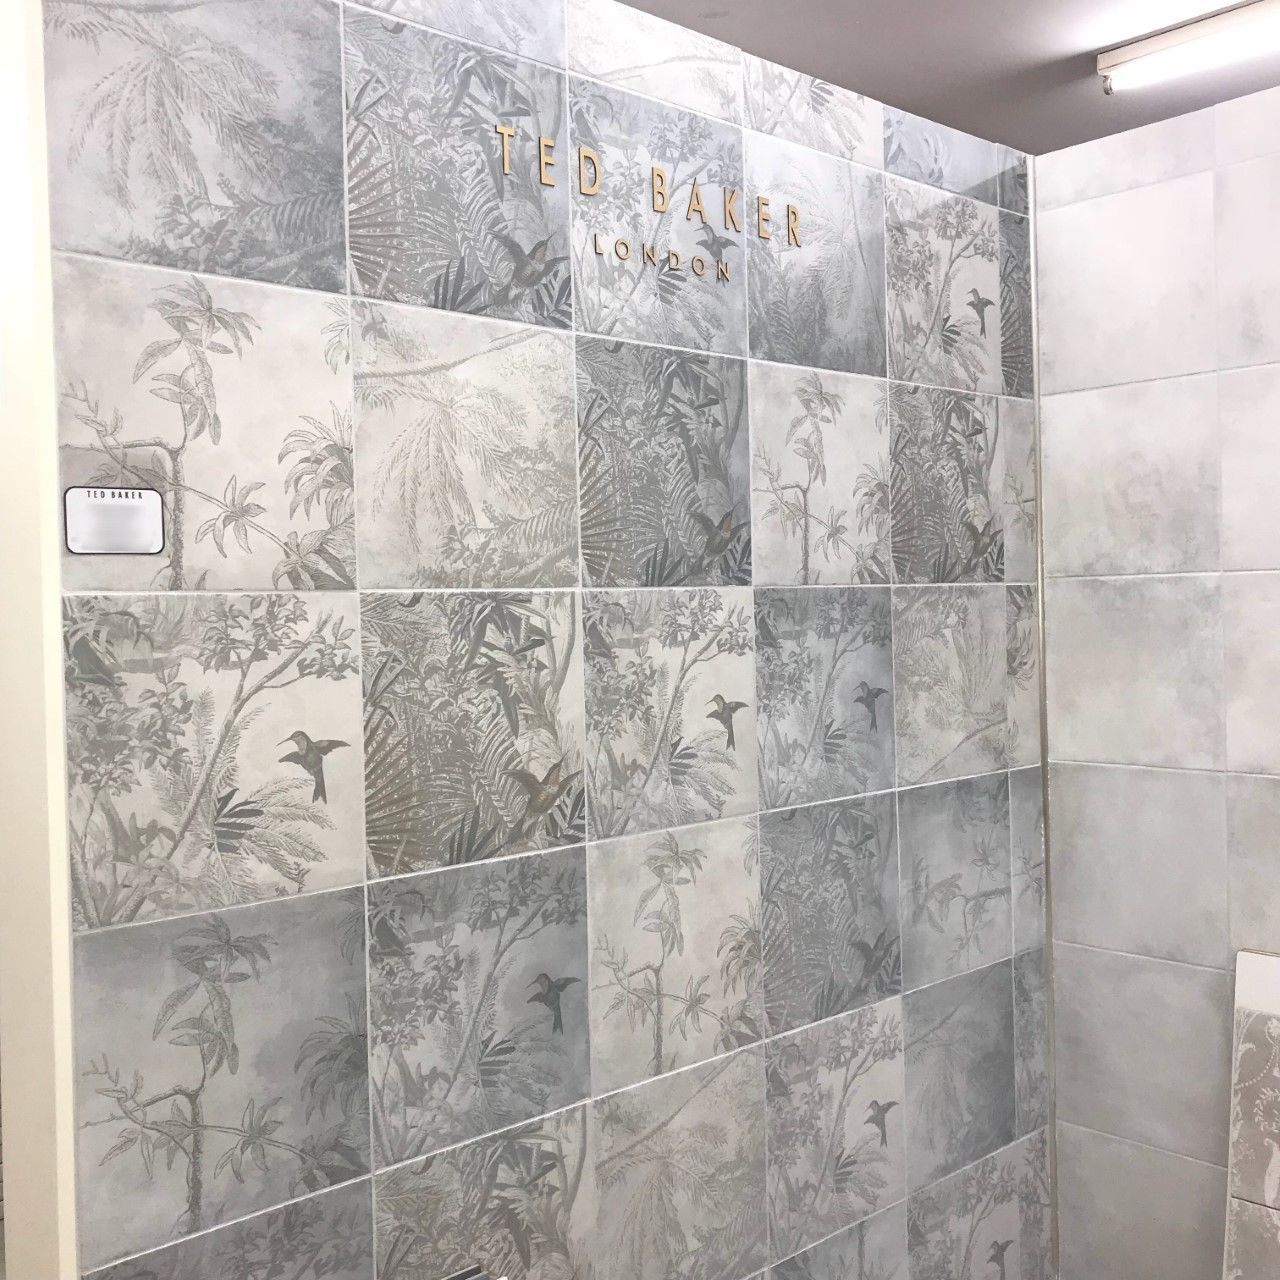 Ted Baker Paradise Tiles Tile Bathroom Tiles For Sale Bathroom Tile Designs